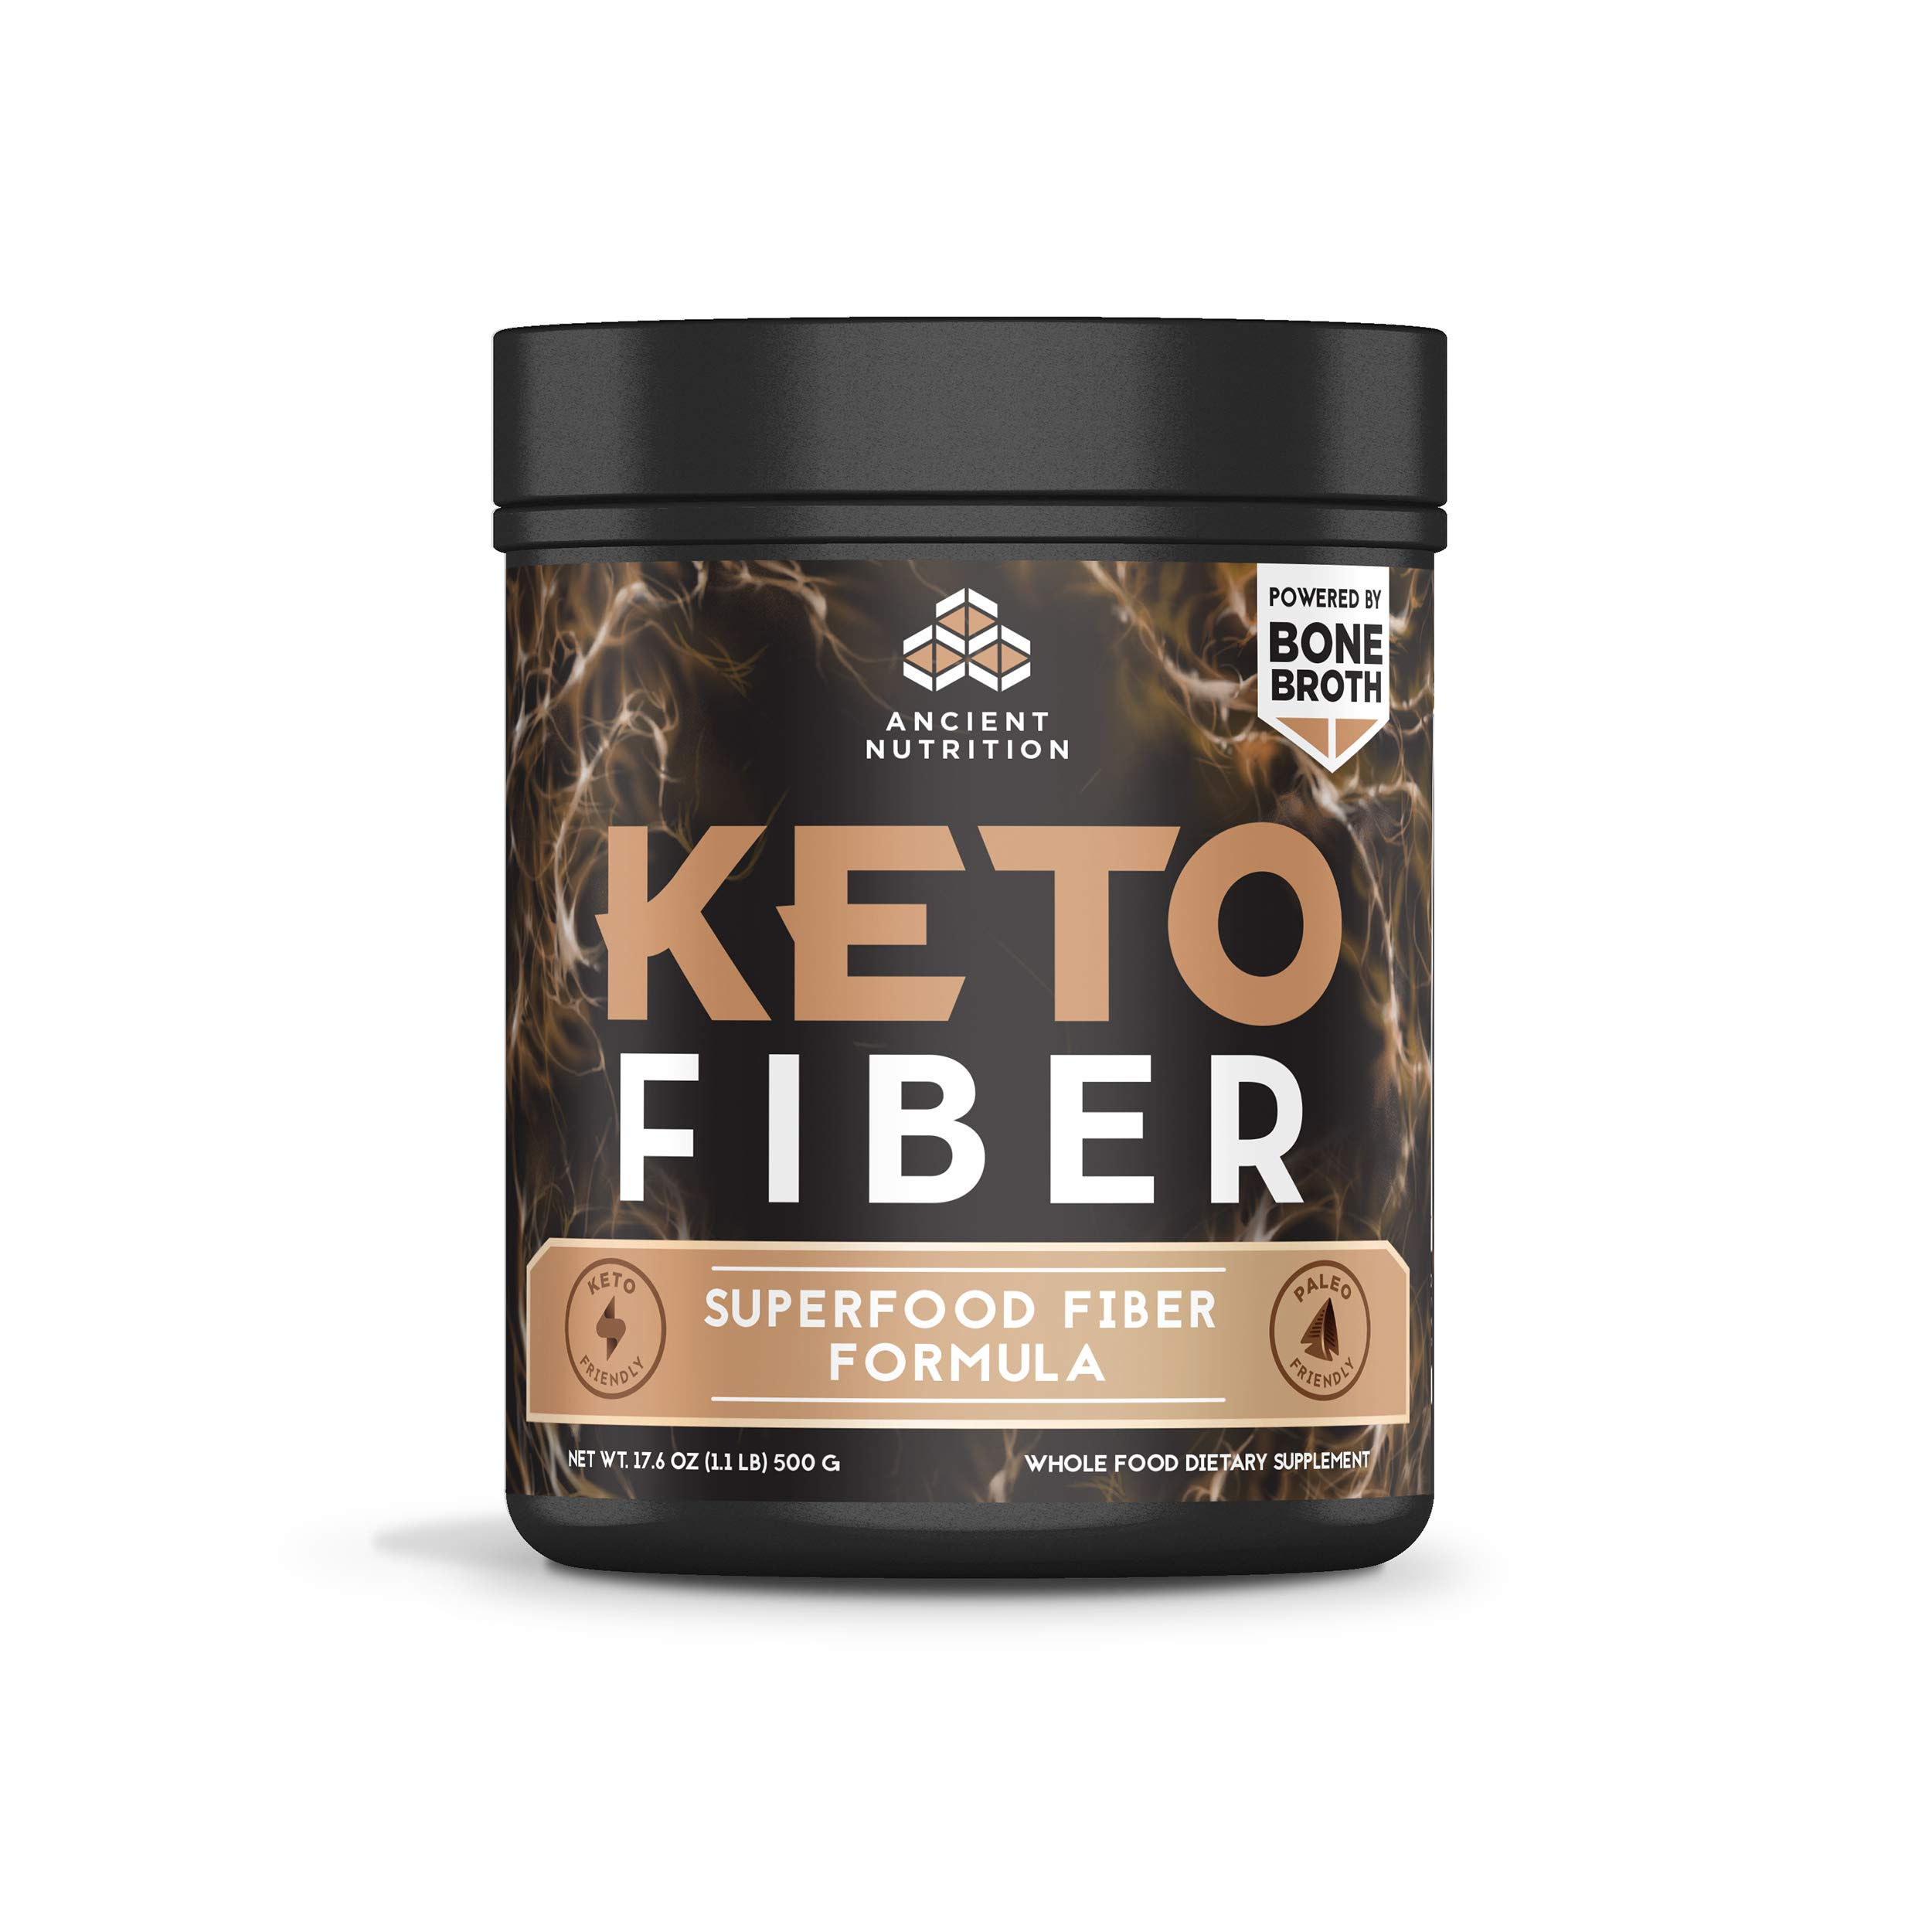 Ancient Nutrition KetoFIBER Powder, 17 Servings - Keto Diet Supplement, Low-Carb High-Fiber Superfood Plant Based Blend by Ancient Nutrition